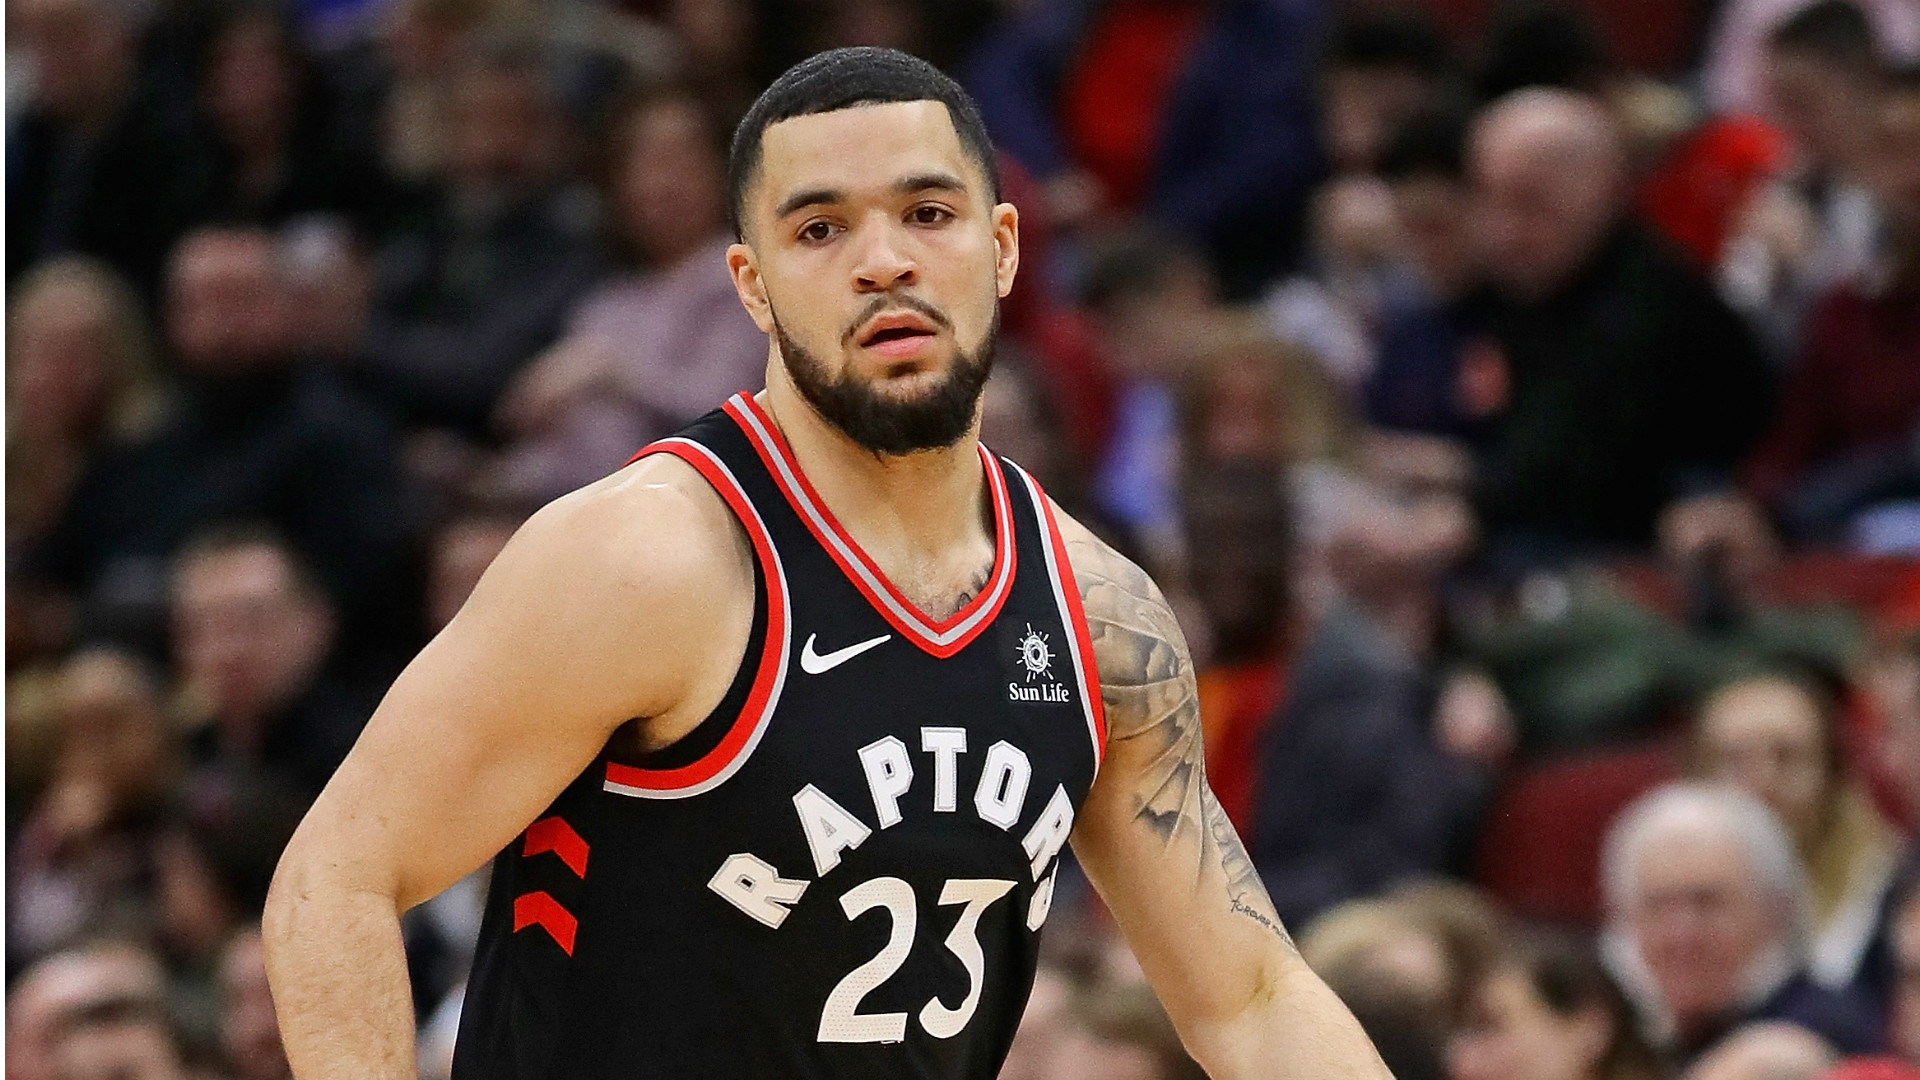 Fred VanVleet injury update: Raptors guard exits final regular season game with shoulder bruise ...